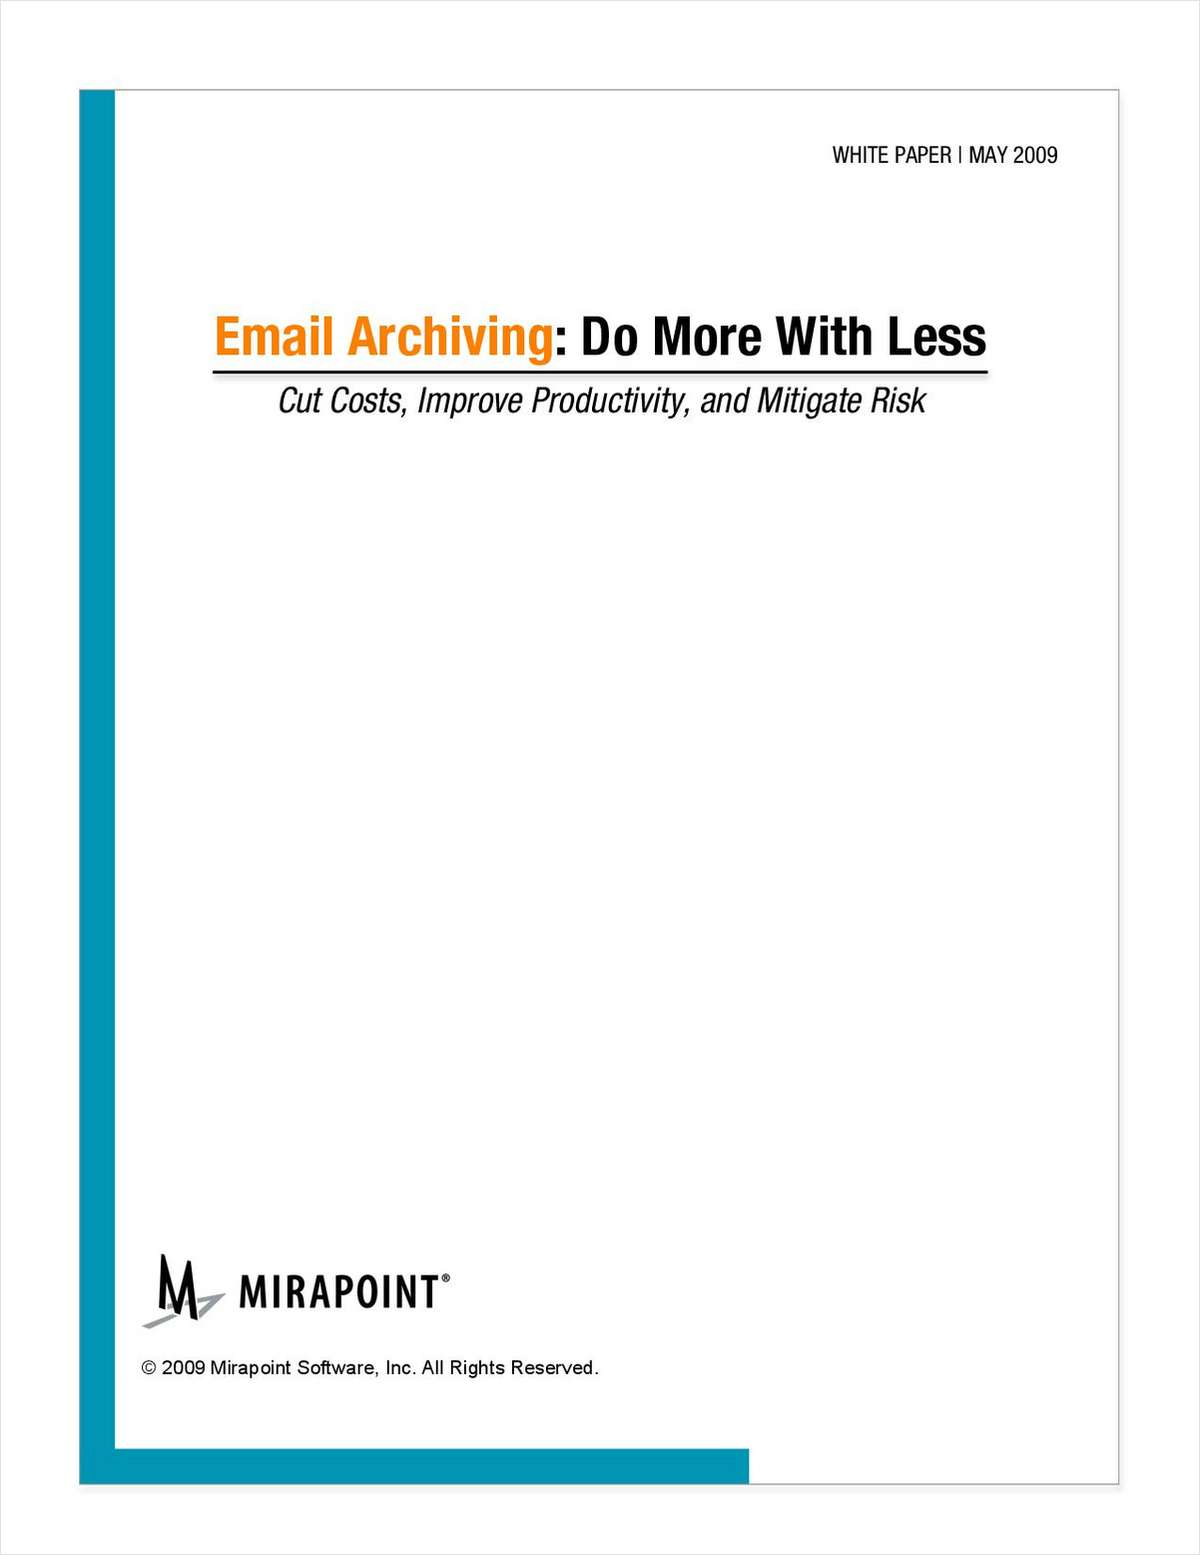 Email Archiving: Cut Costs and Mitigate Risk for your Enterprise